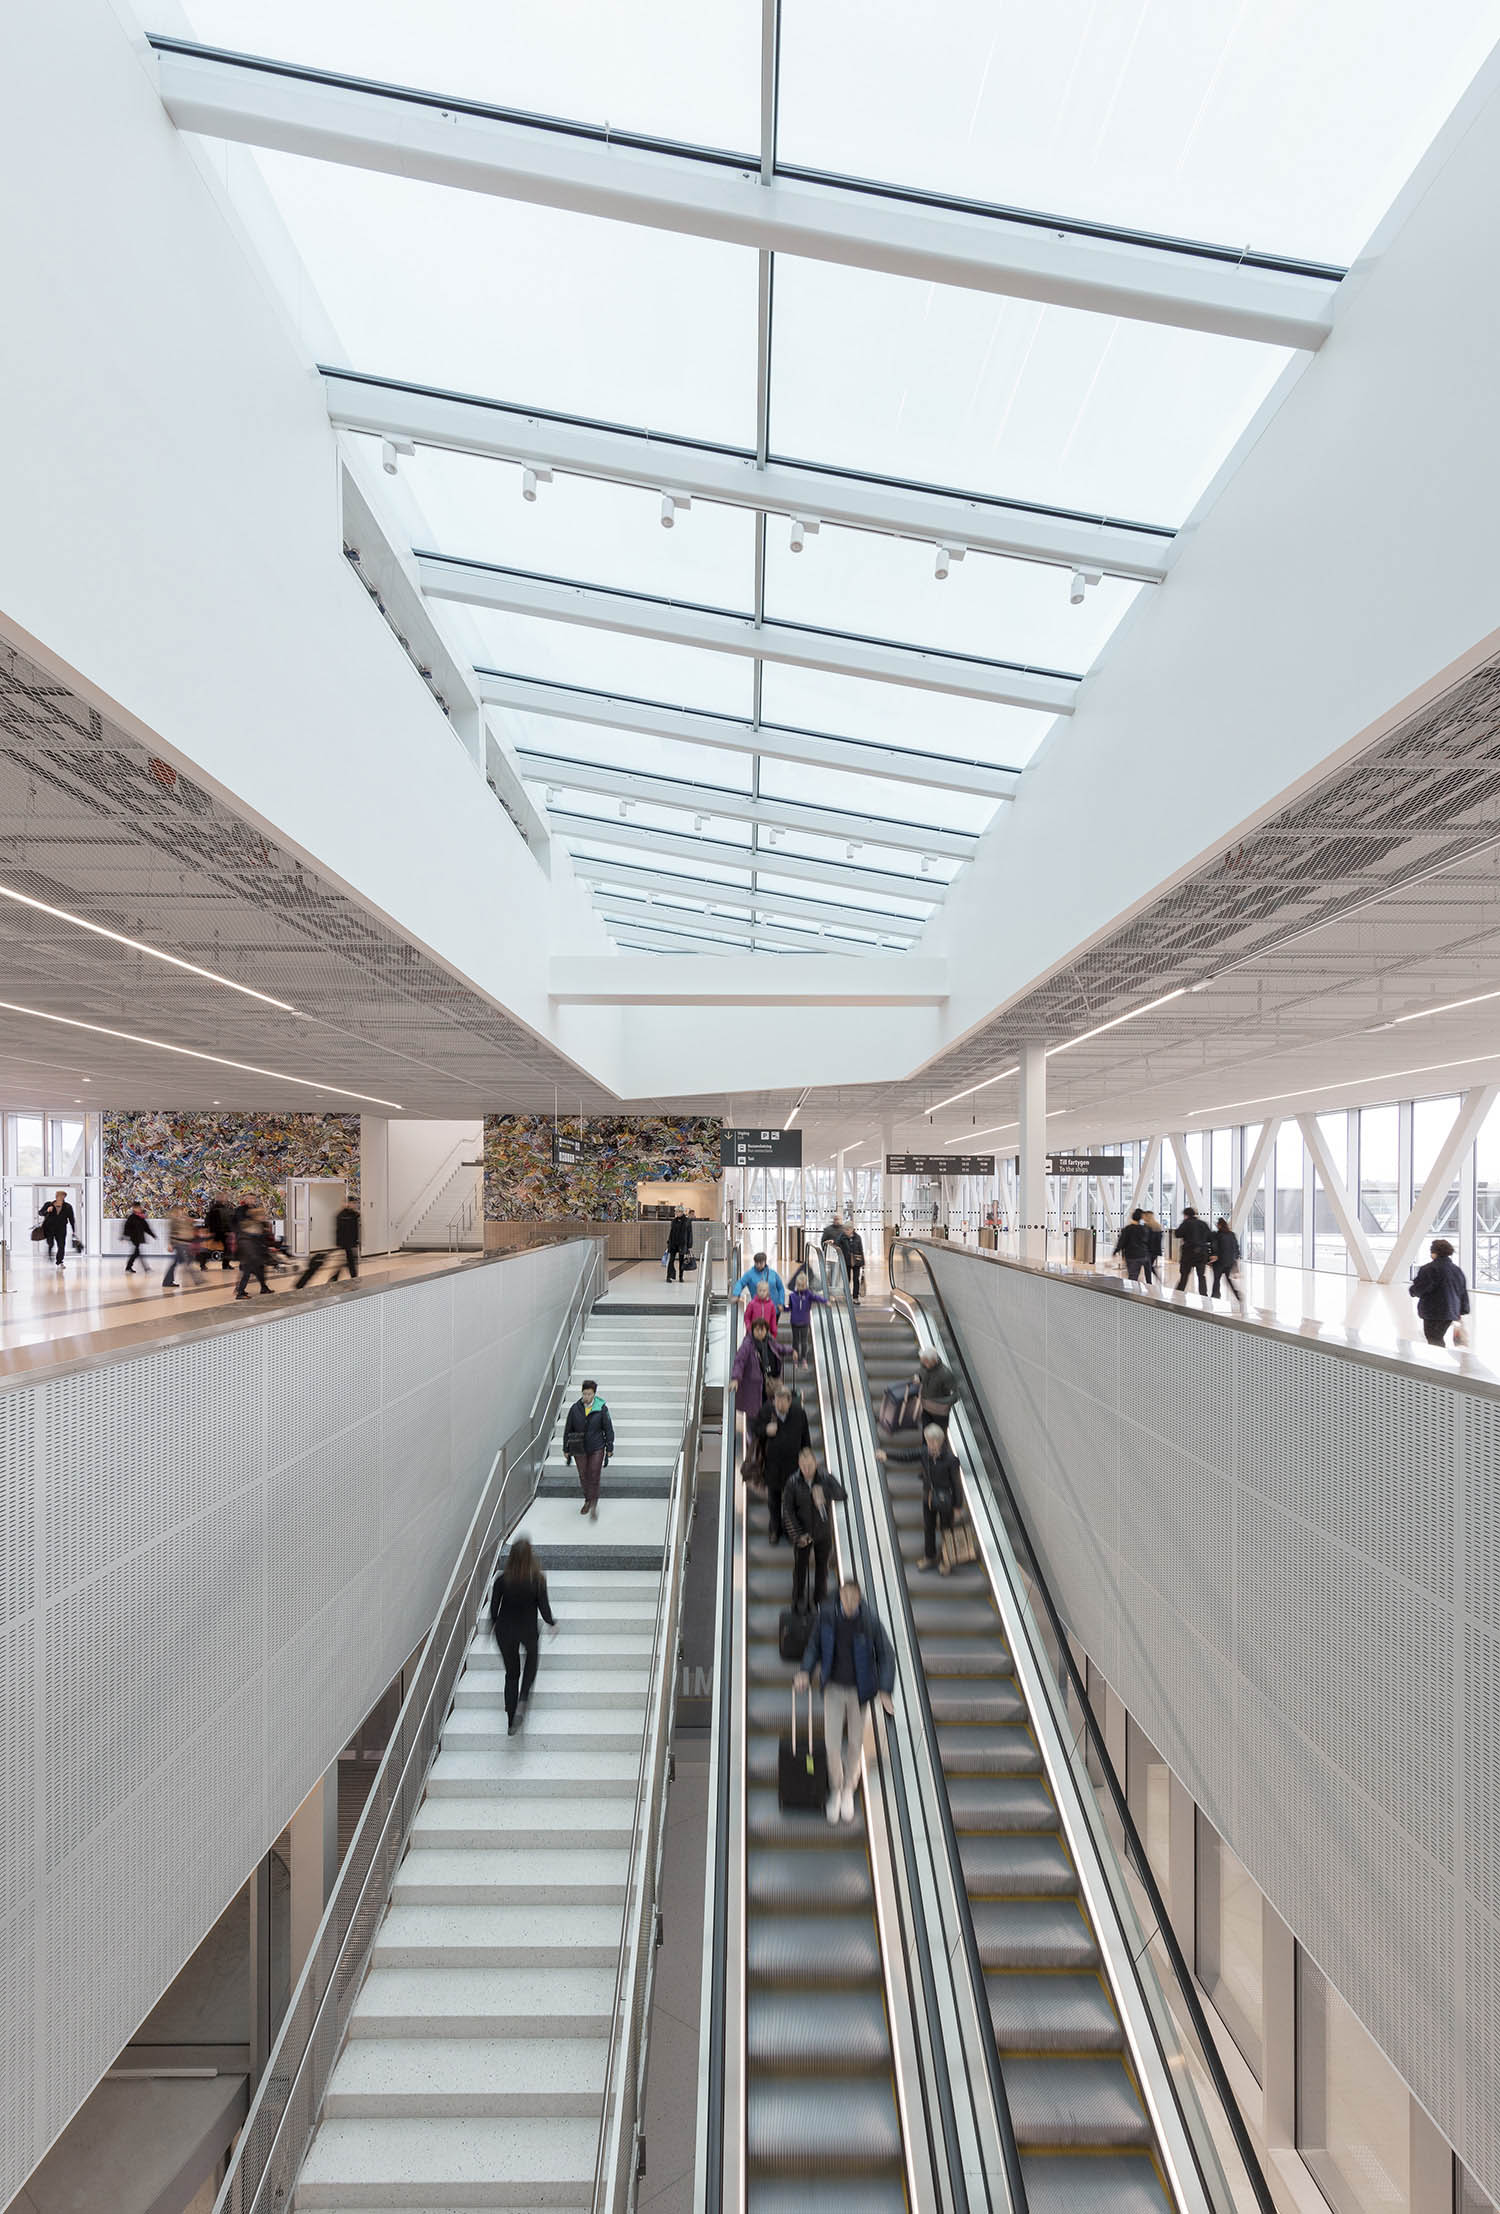 The skylight emphasizing the vertical connection between ground floor and departure hall.